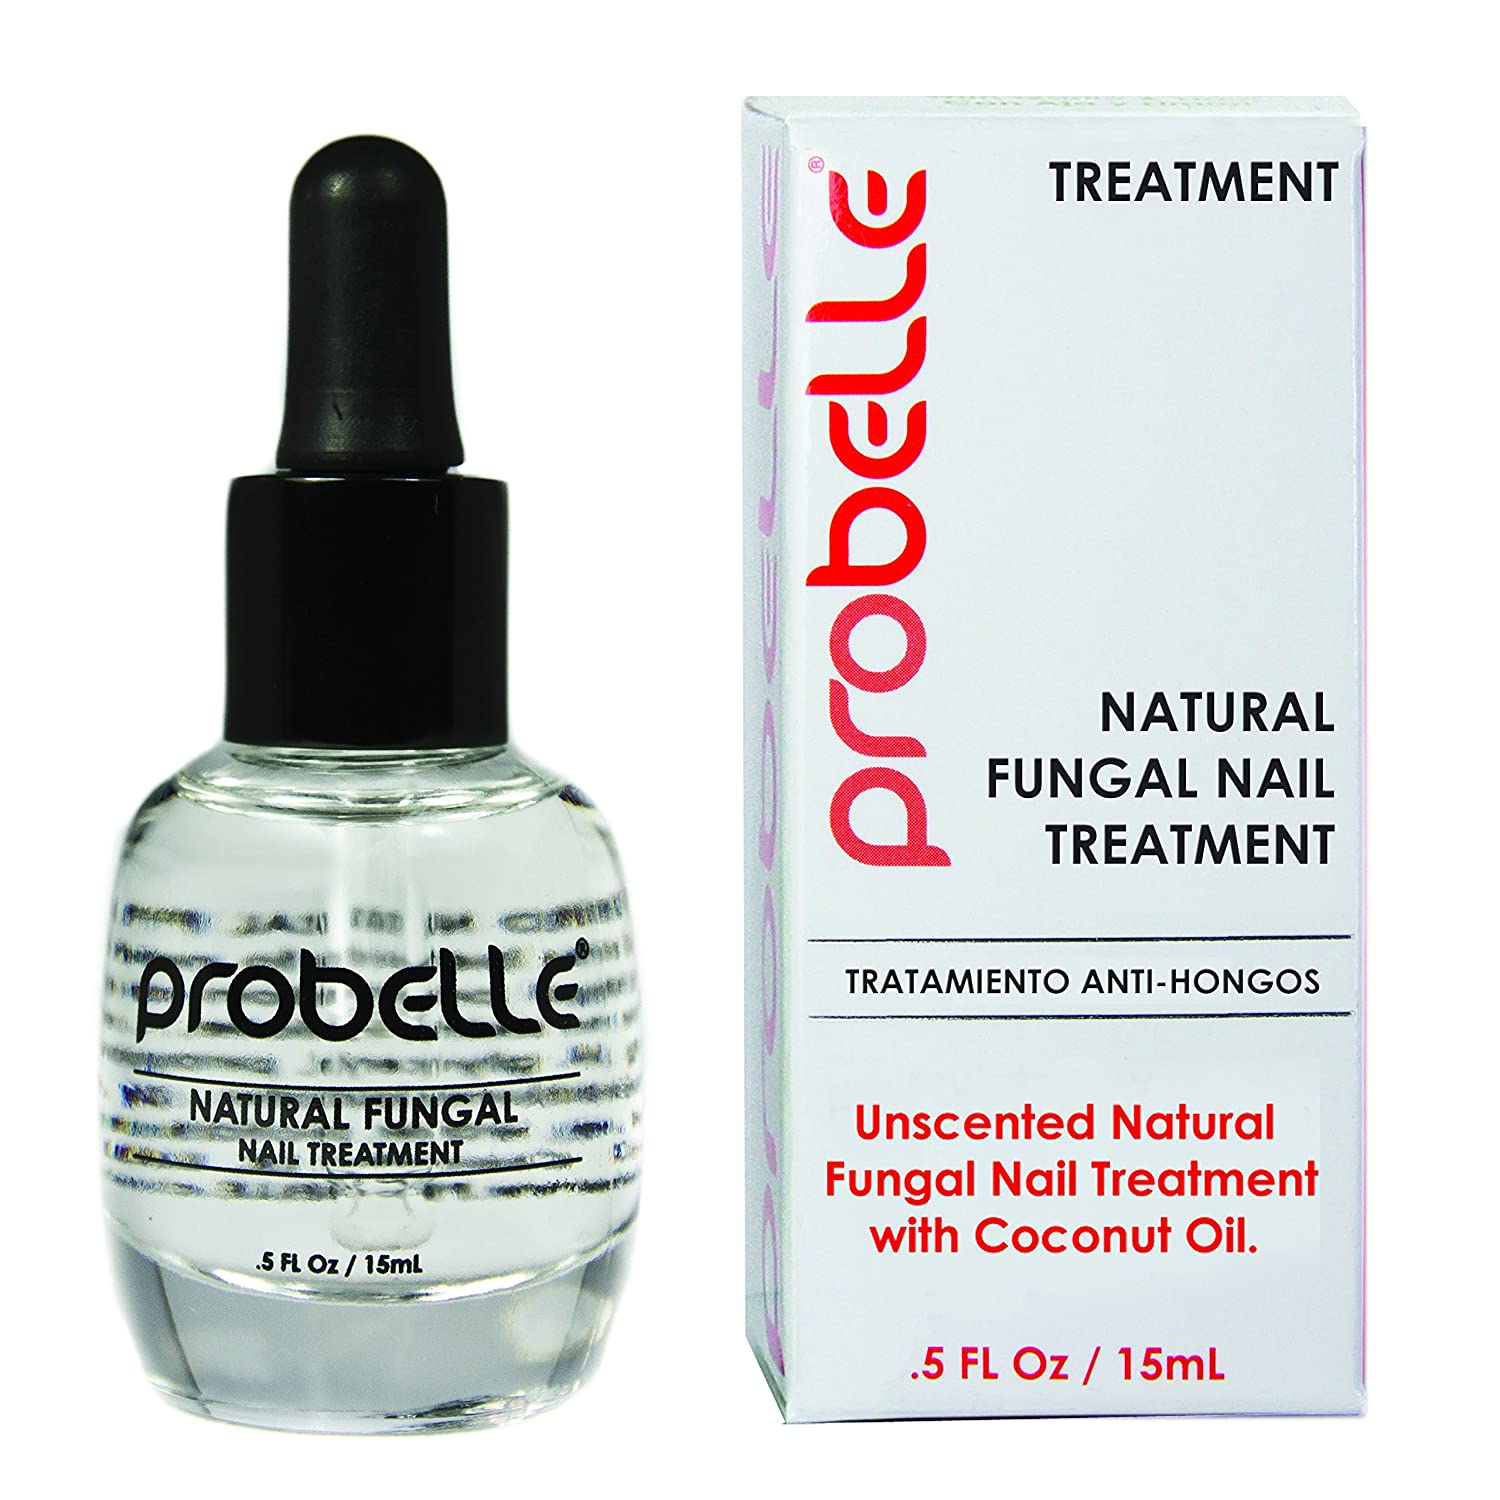 Probelle Natural Fungal Nail Treatment, Anti Fungal Nail Treatment, Nail Color Restoration, Clear, .5 oz/ 15 ml (Patented Formula)